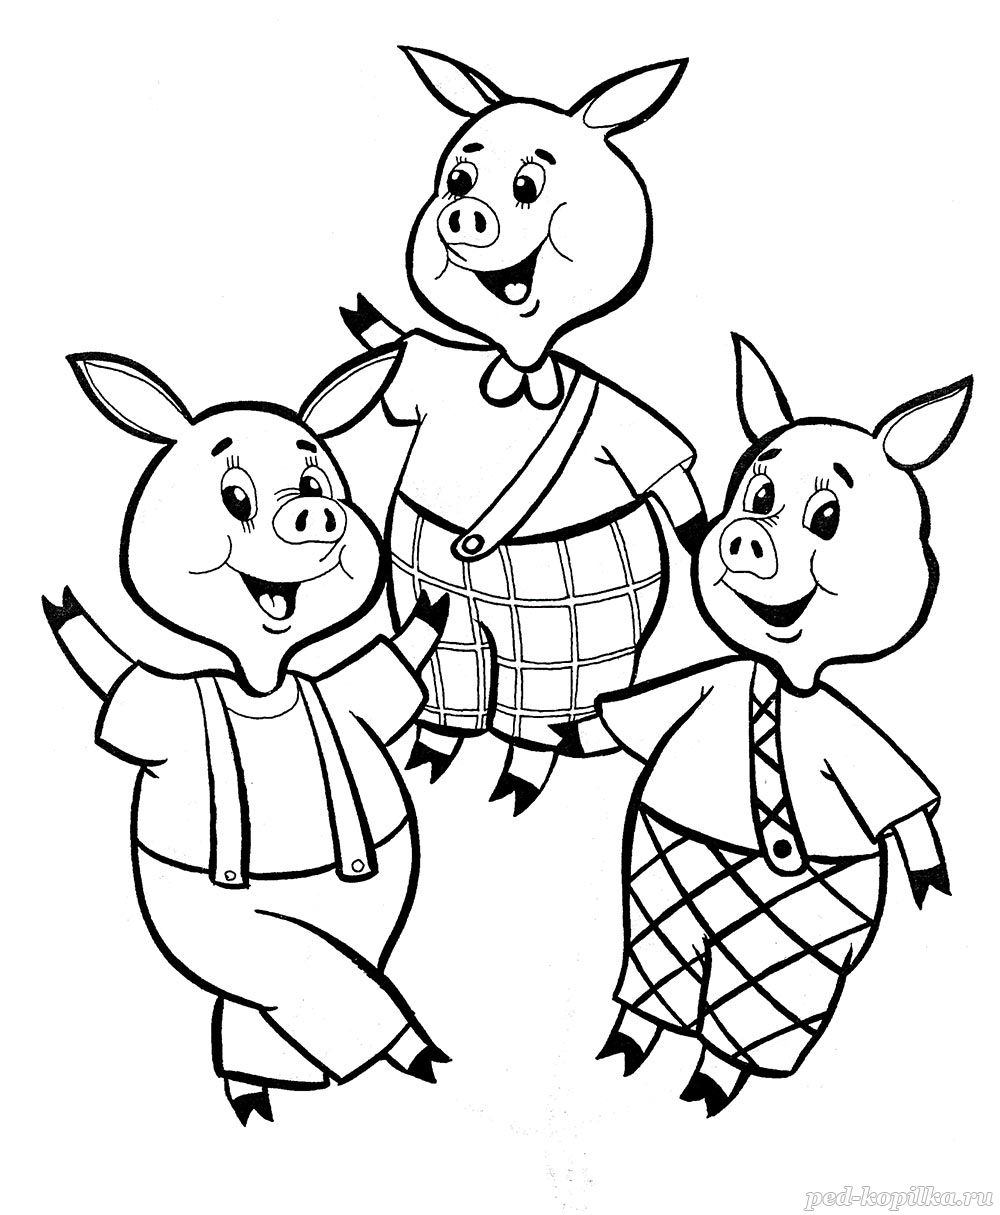 3 little pigs coloring page three little pigs wolf running coloring page tim39s page pigs coloring little 3